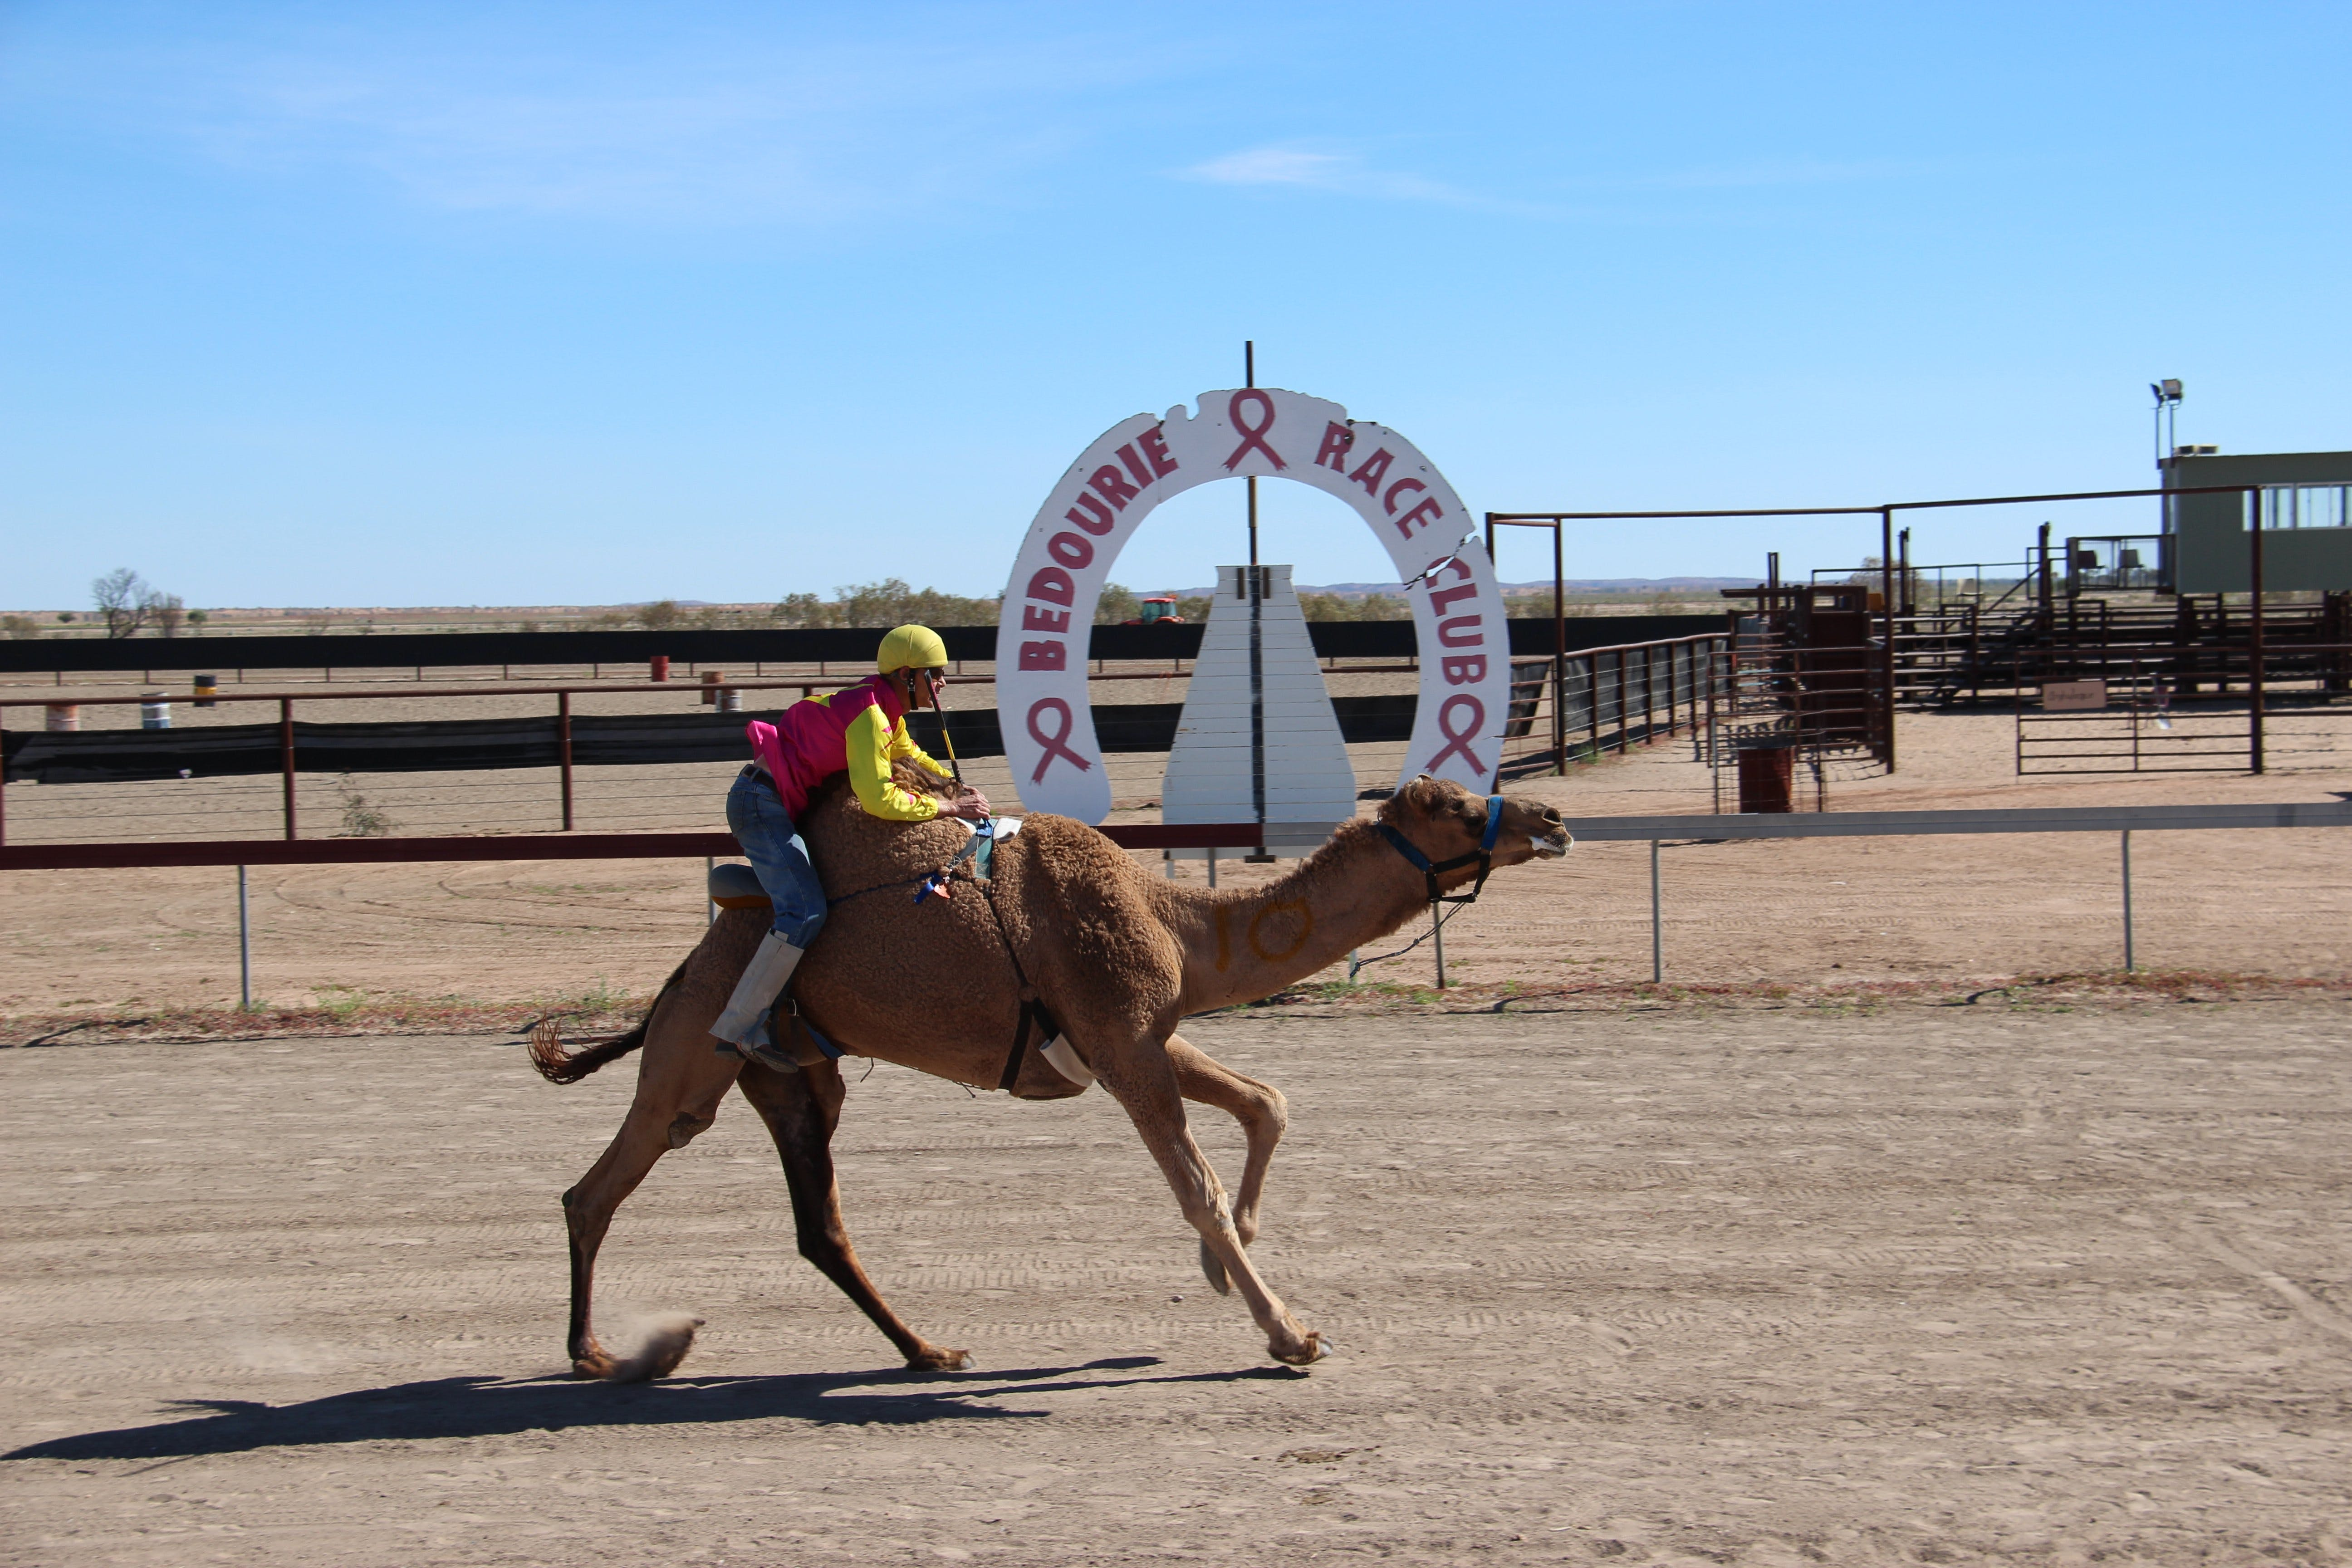 Bedourie Camel and Pig Races and Camp oven Cook-off - Accommodation Australia